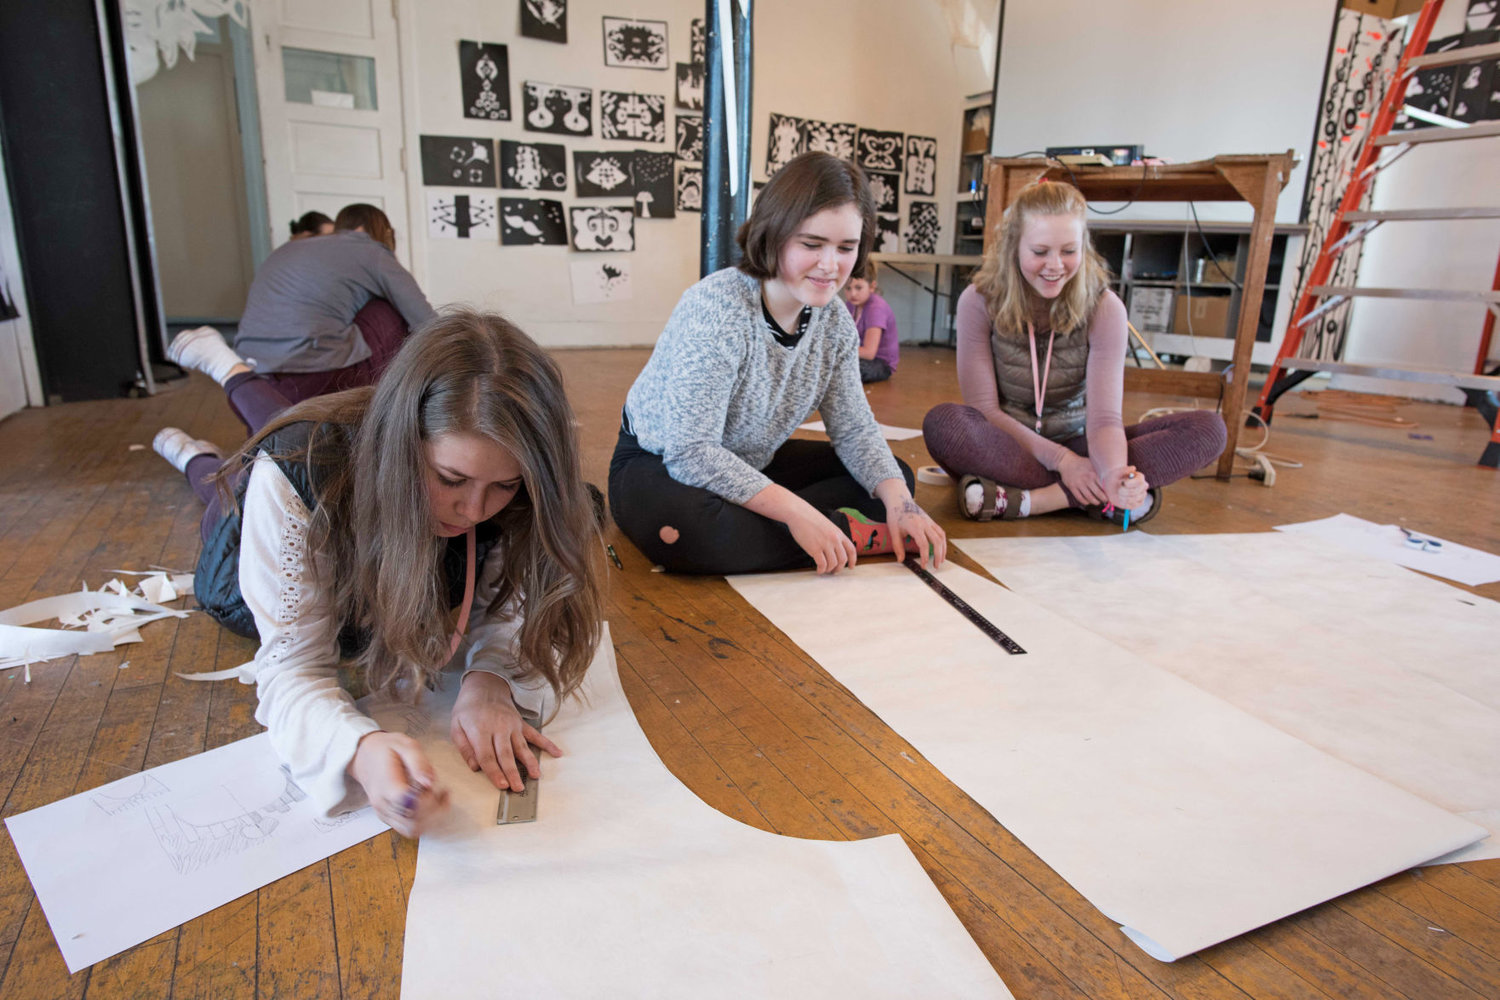 Explorations is one of Centrum's youth programs. Martha Worthley, the program's manager, is to talk about the impacts of art on youth at the AAUW (American Association of University Women) Port Townsend meeting on March 17. She is joined by Linda York and Kristin Smith. All are welcome to attend. Centrum photo courtesy David Conklin